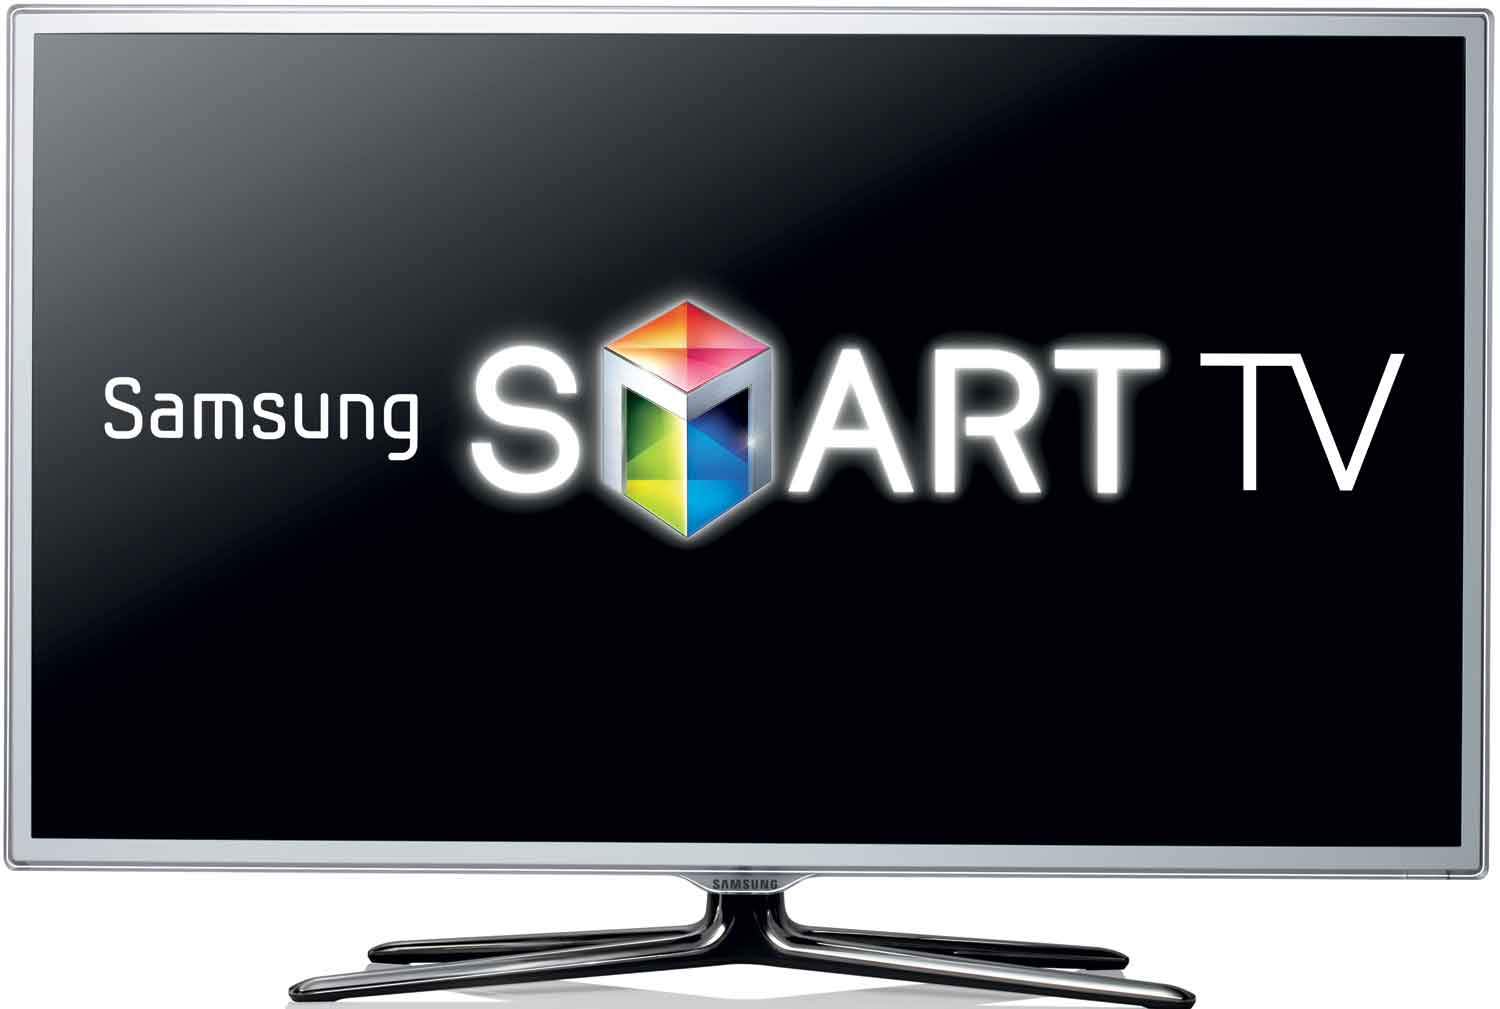 Your Samsung TV is eavesdropping on your private conversations